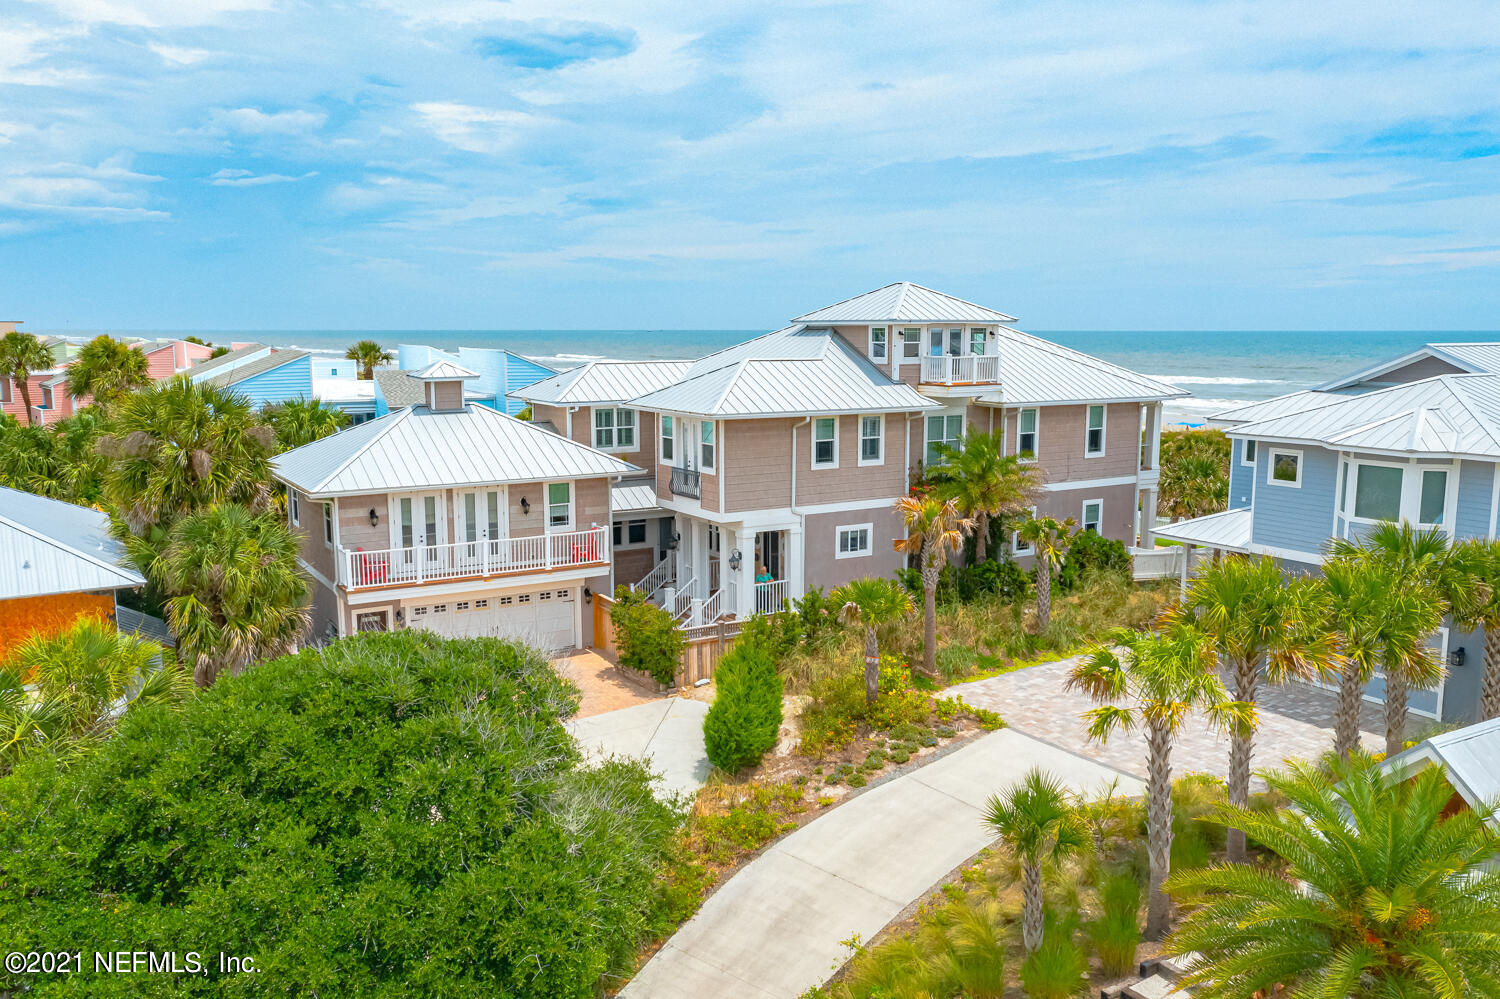 28 SEASCAPE, ST AUGUSTINE, FLORIDA 32080, 4 Bedrooms Bedrooms, ,5 BathroomsBathrooms,Residential,For sale,SEASCAPE,1114236